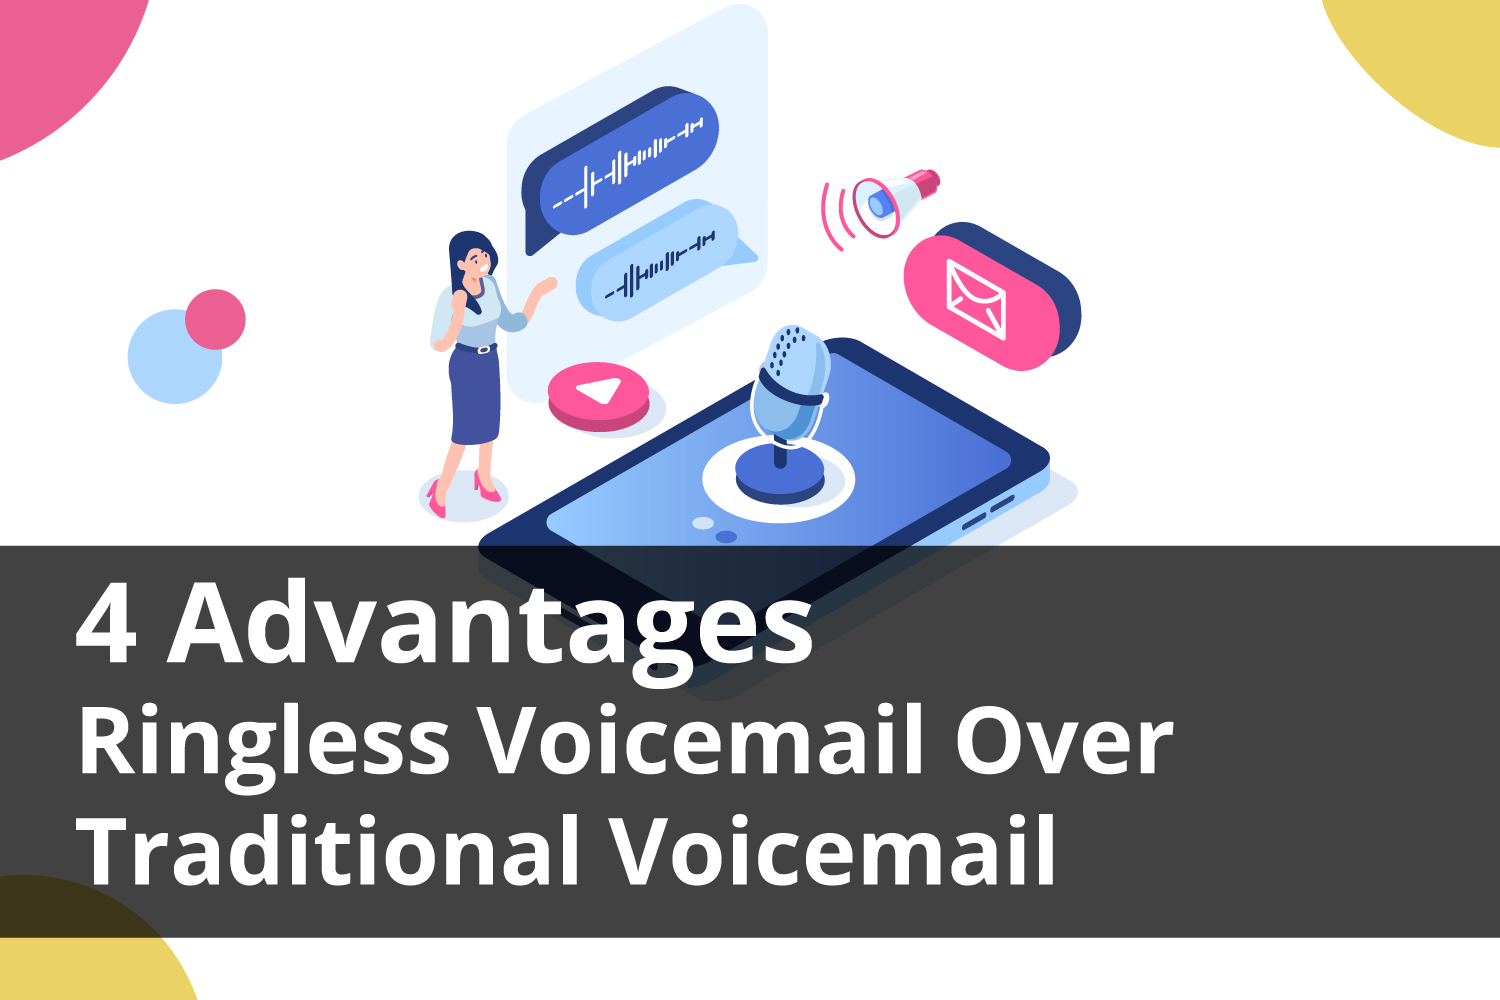 4 Advantages of Ringless Voicemail Over Traditional Voicemail by Stratics Networks, Inventors of Ringless Voicemail